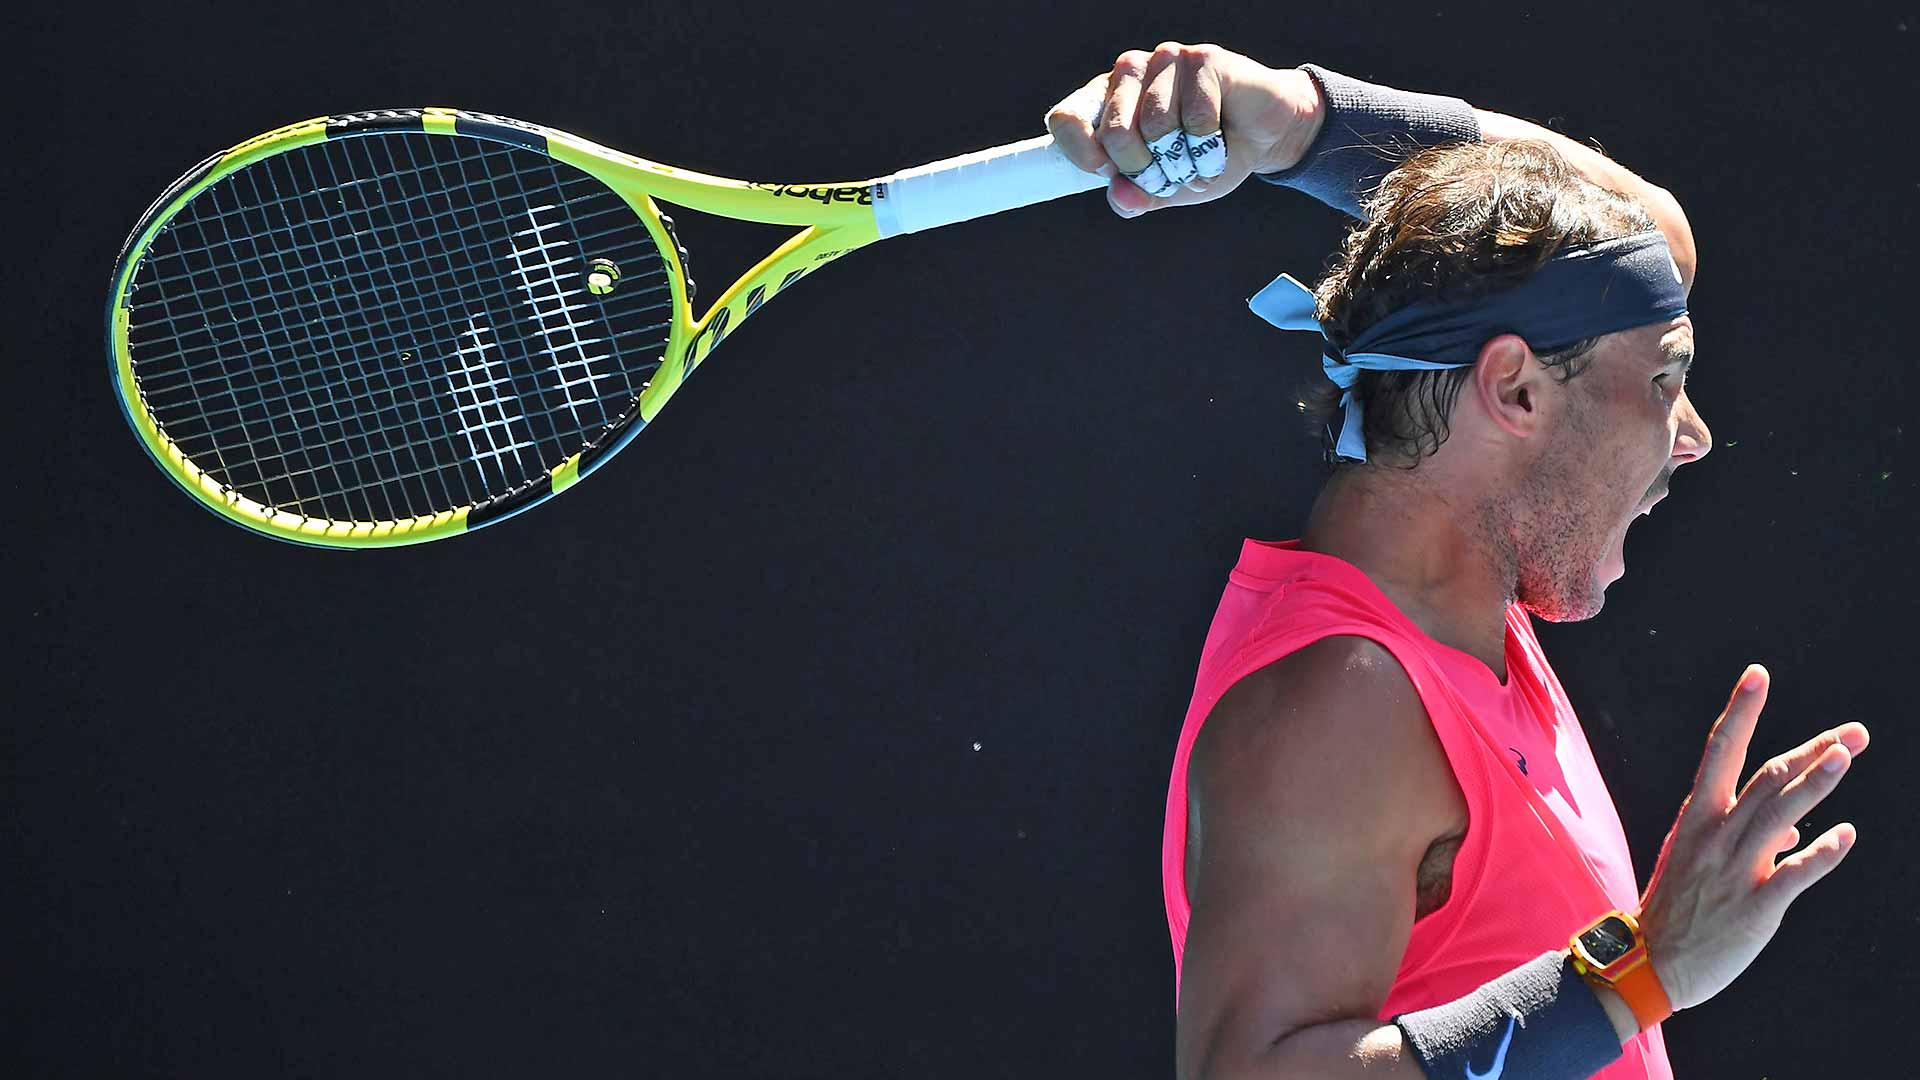 Rafael Nadal powers into the fourth round of the Australian Open.